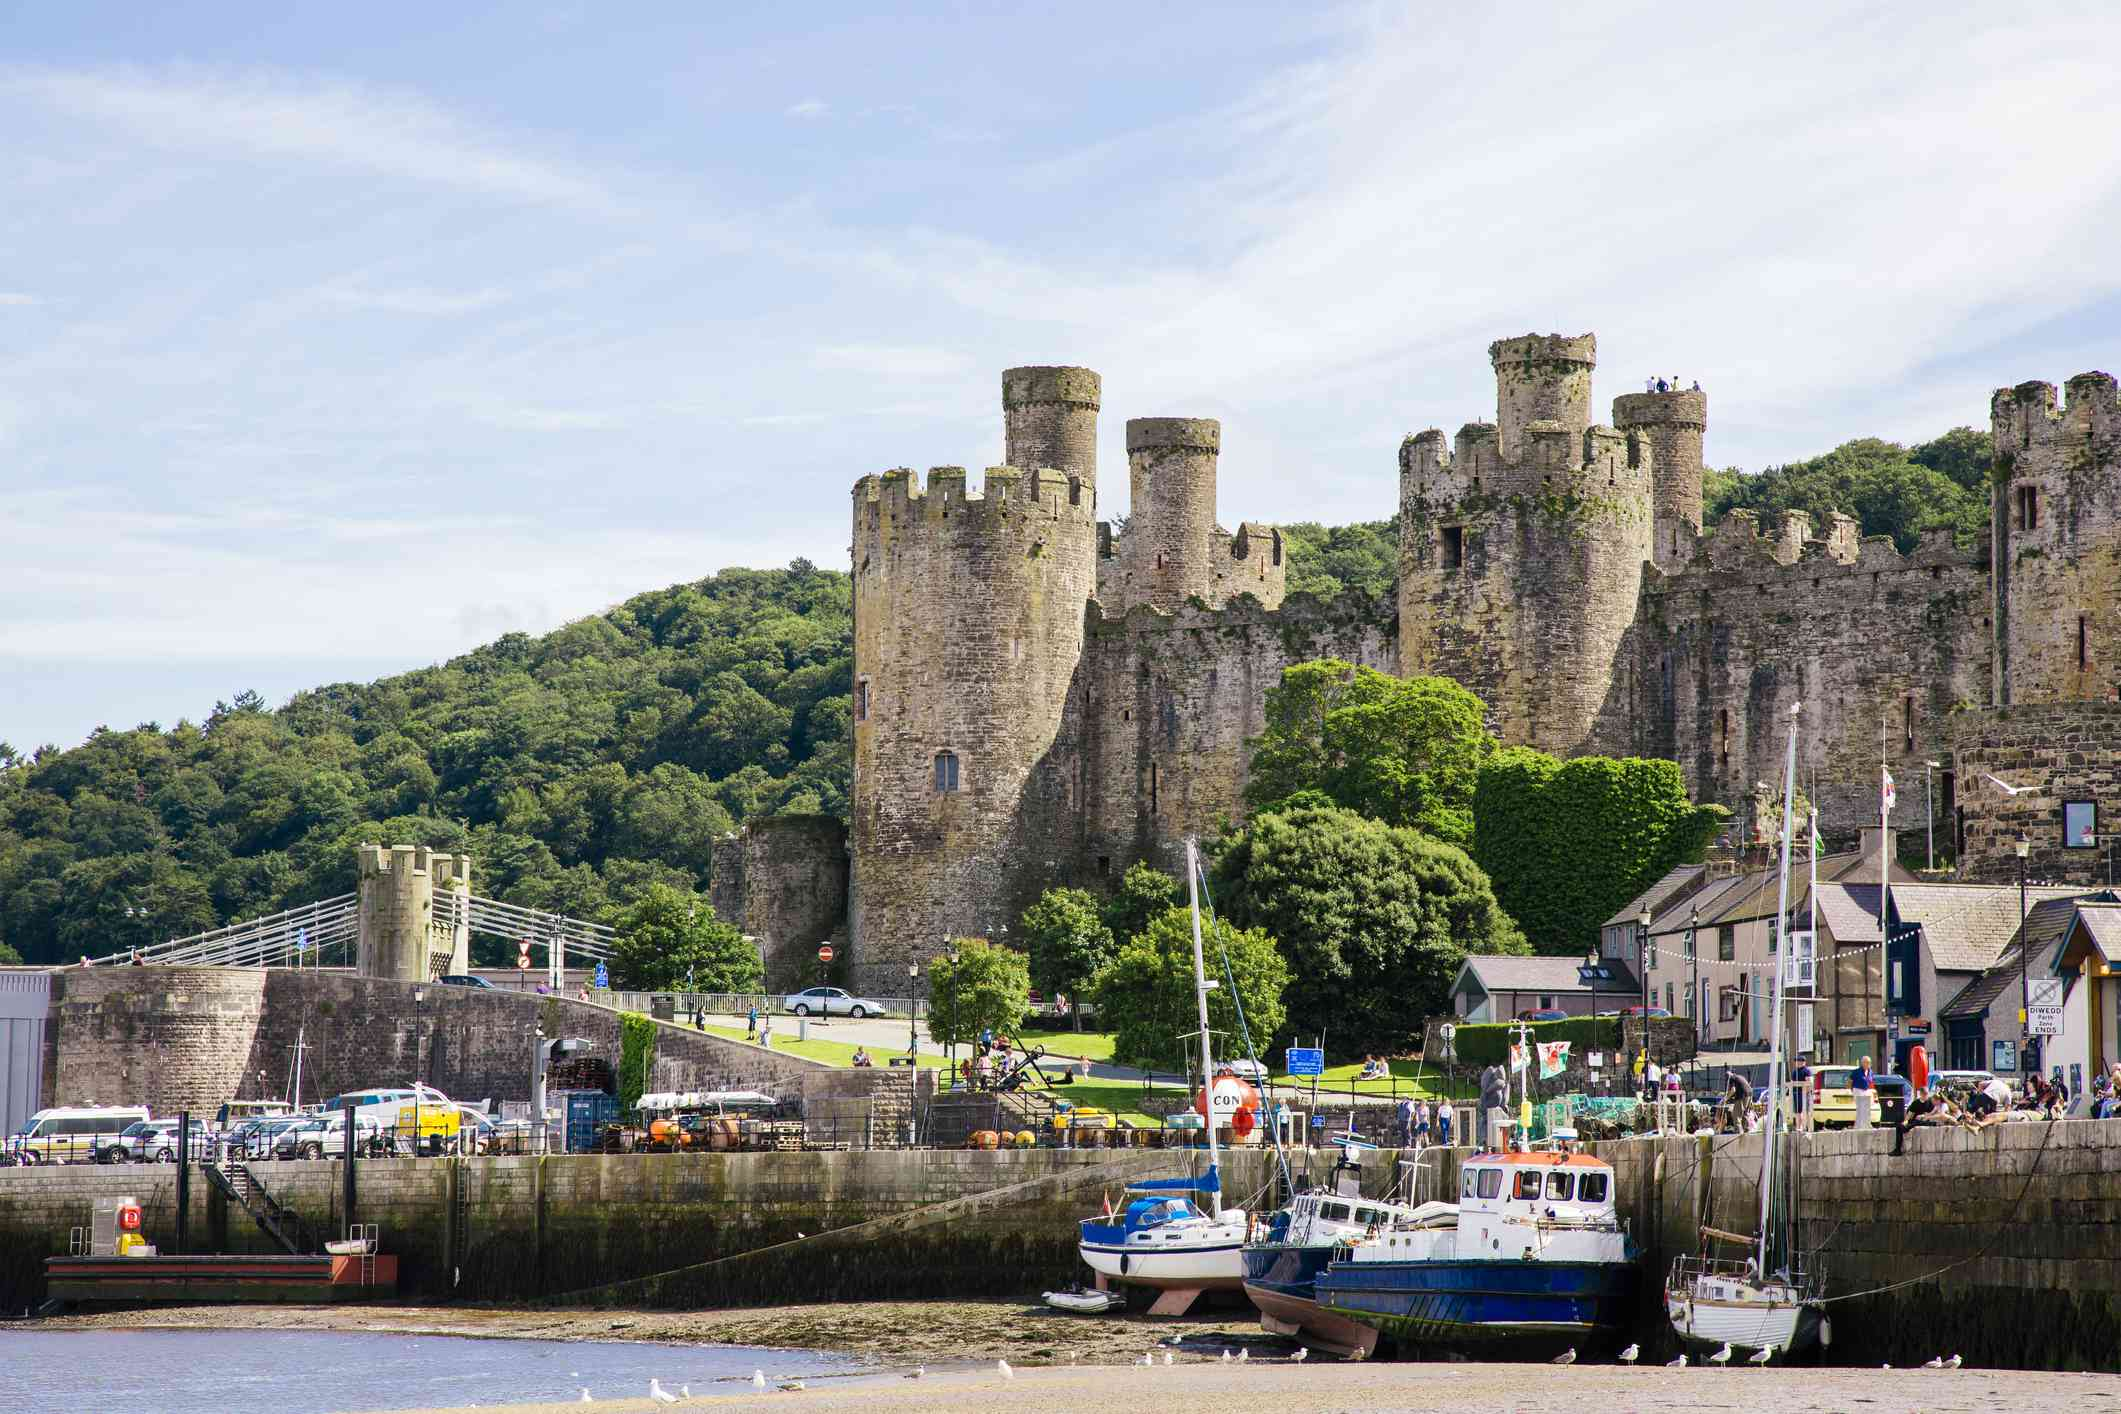 boats in a harbor below Conwy Castle in North Wales